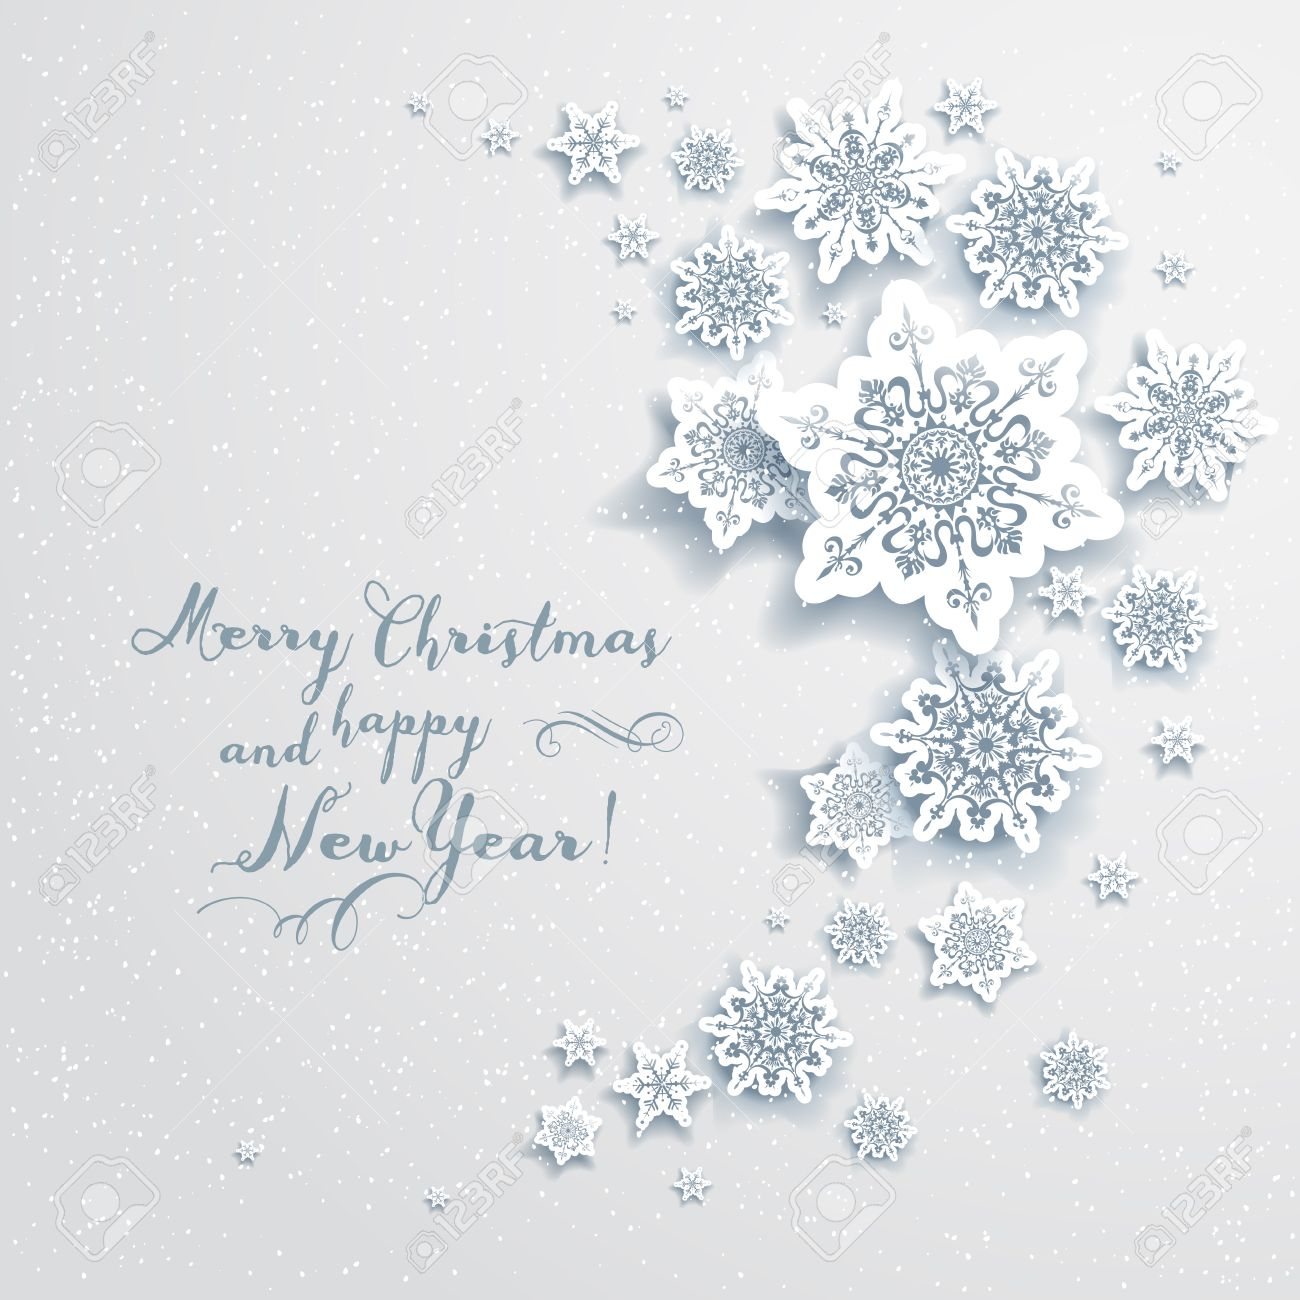 Holiday Christmas Card With Snowflakes. Elegant Design For ...